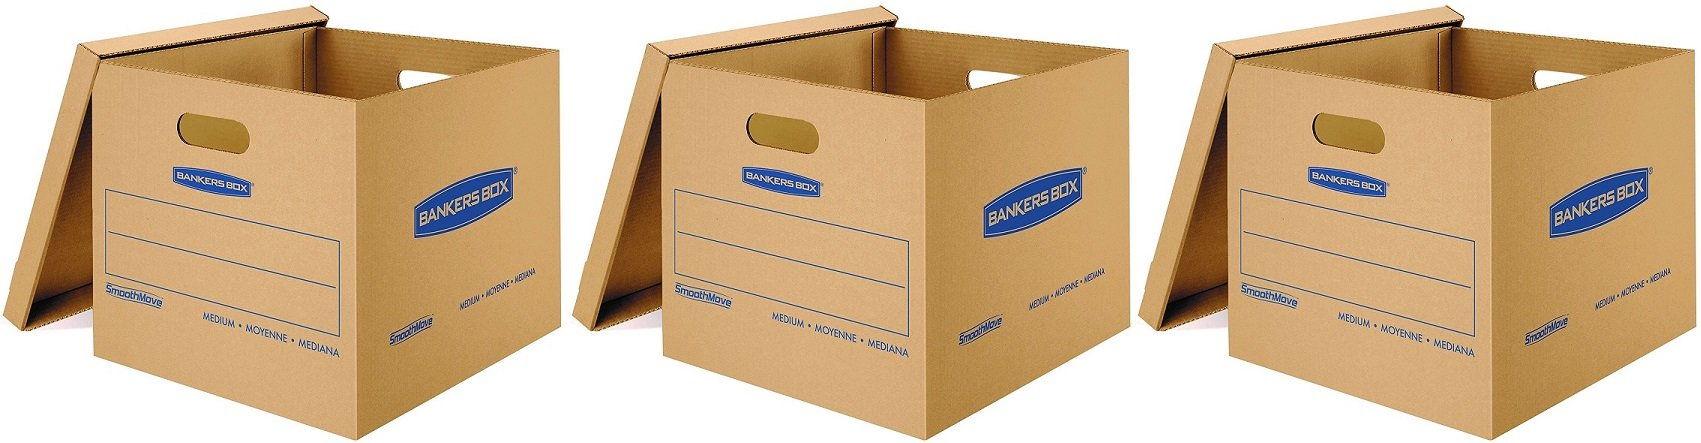 Bankers Box SmoothMove Classic Moving Boxes, Tape-Free Assembly, Easy Carry Handles, Medium, 18 x 15 x 14 inches, (7717204) (3 X Pack of 10)